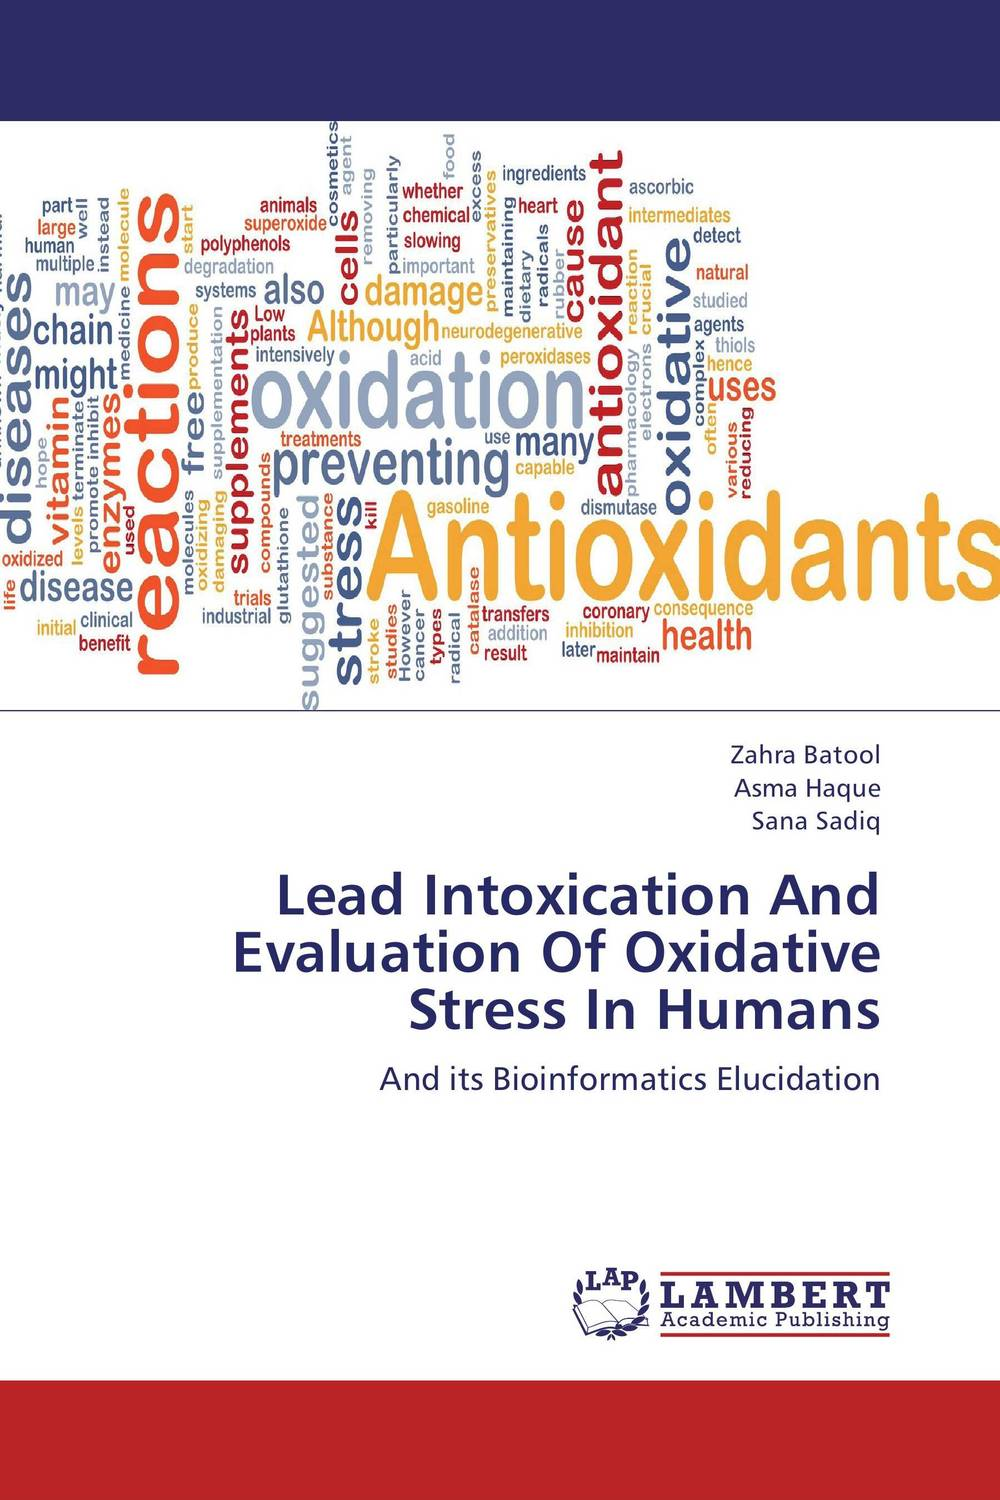 Lead Intoxication And Evaluation Of Oxidative Stress In Humans in situ detection of dna damage methods and protocols